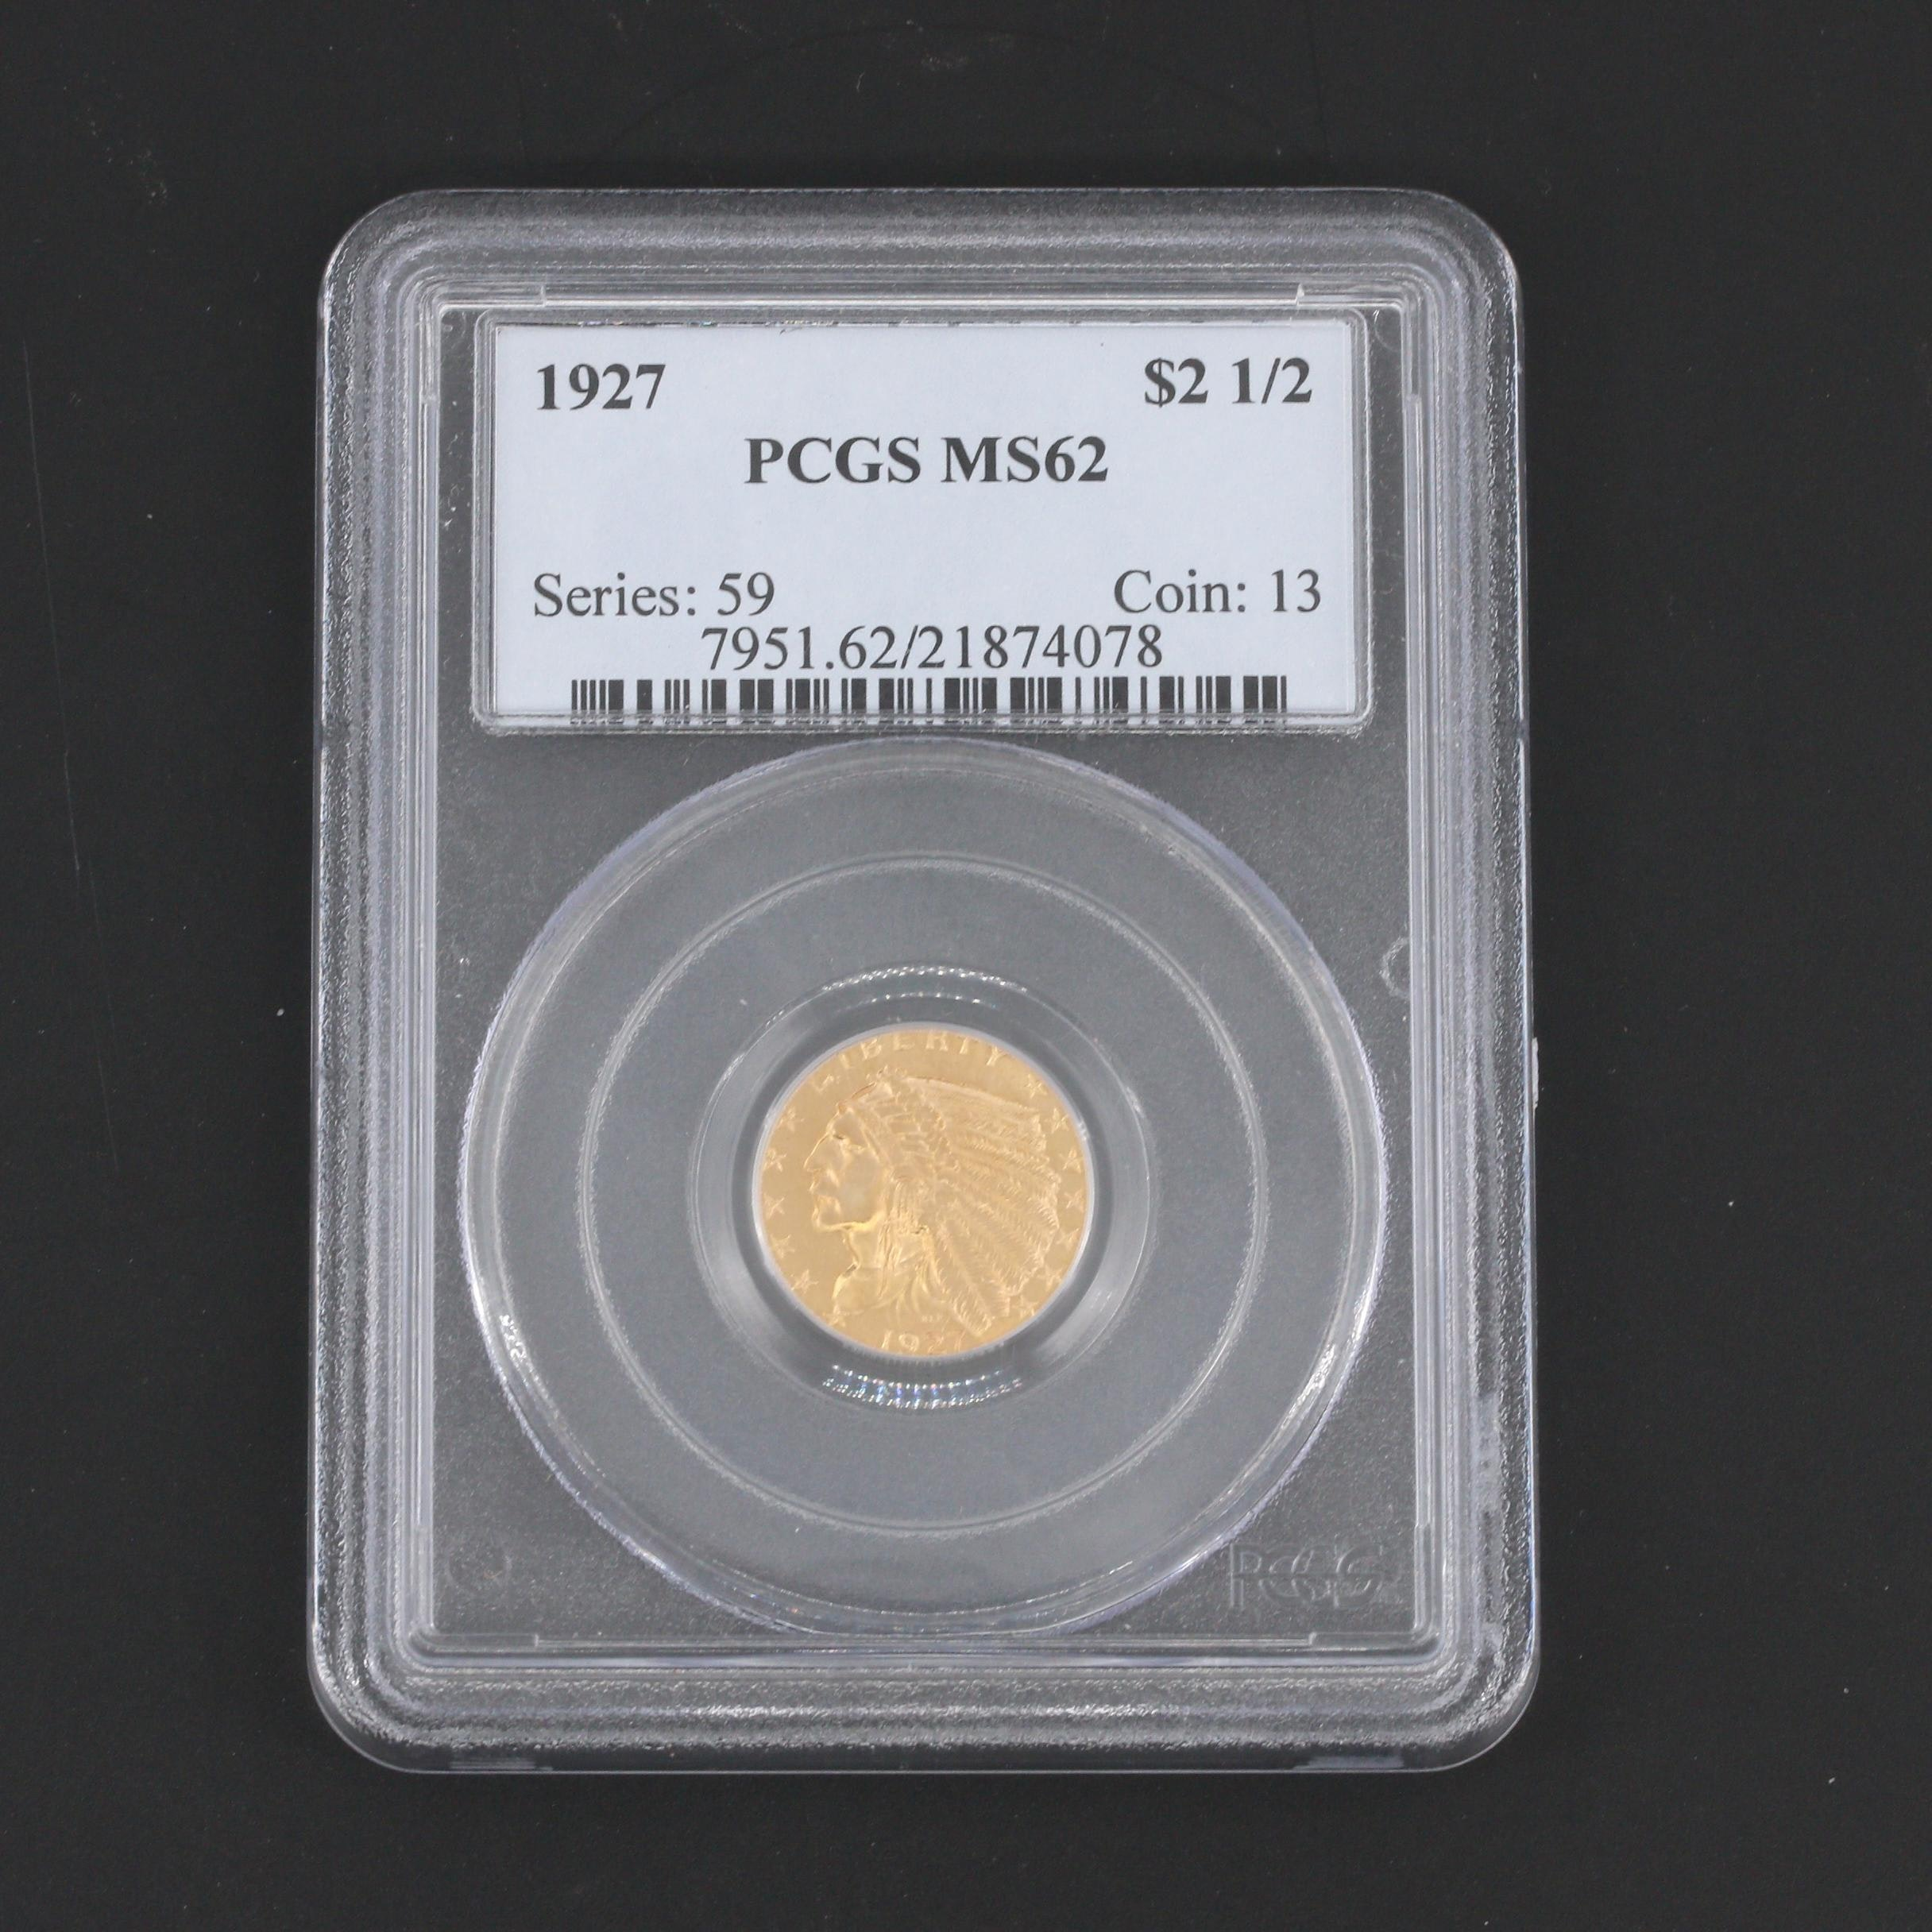 PCGS Graded MS62 1927 Indian Head Quarter Eagle $2.50 Gold Coin